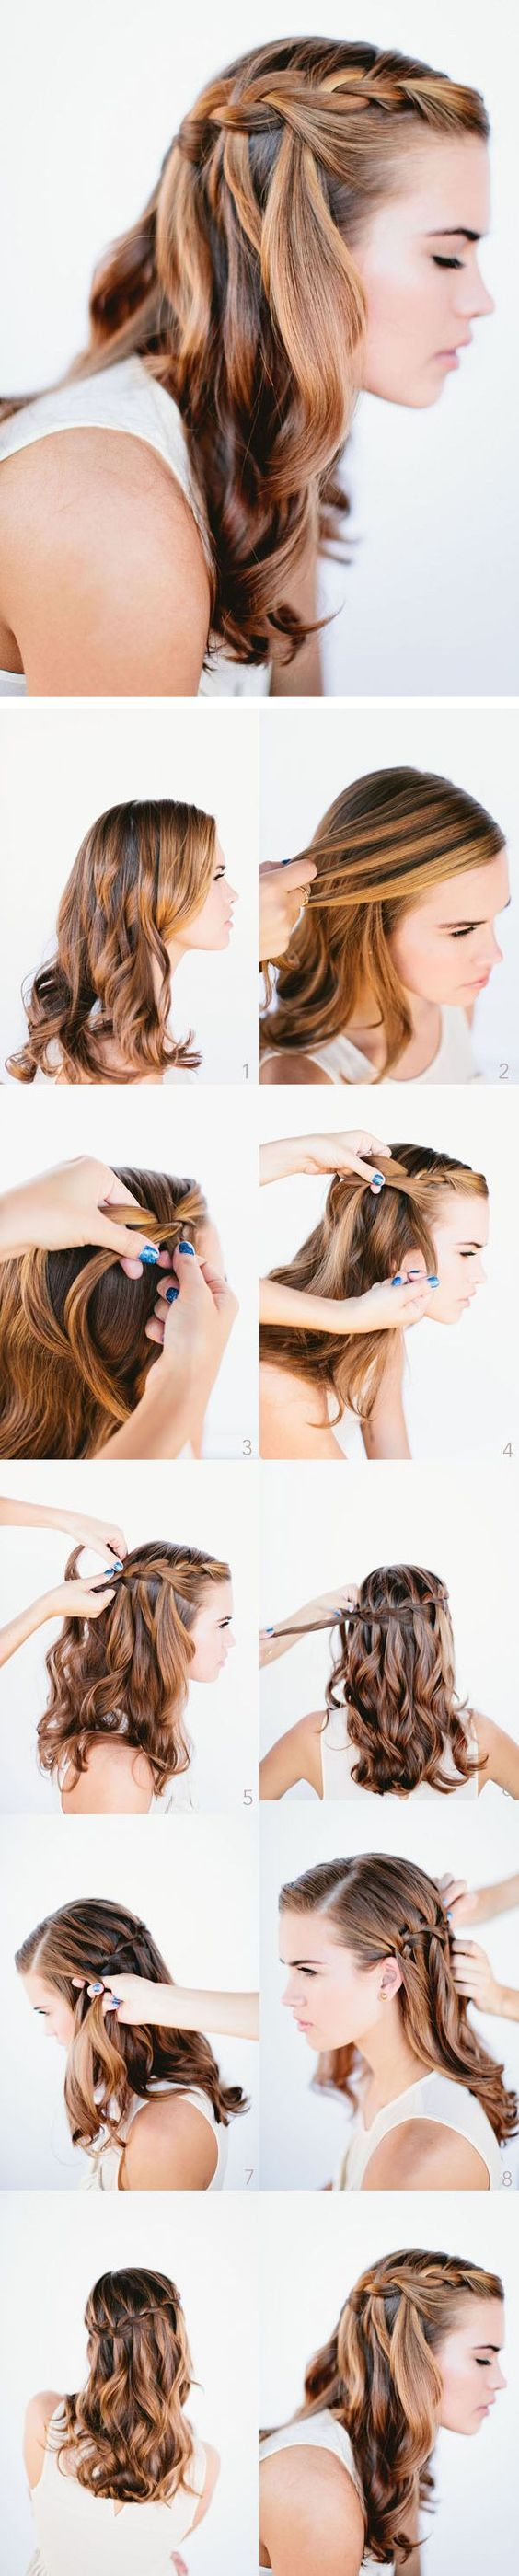 Pleasing 1000 Ideas About Step By Step Hairstyles On Pinterest Hairstyle Short Hairstyles Gunalazisus